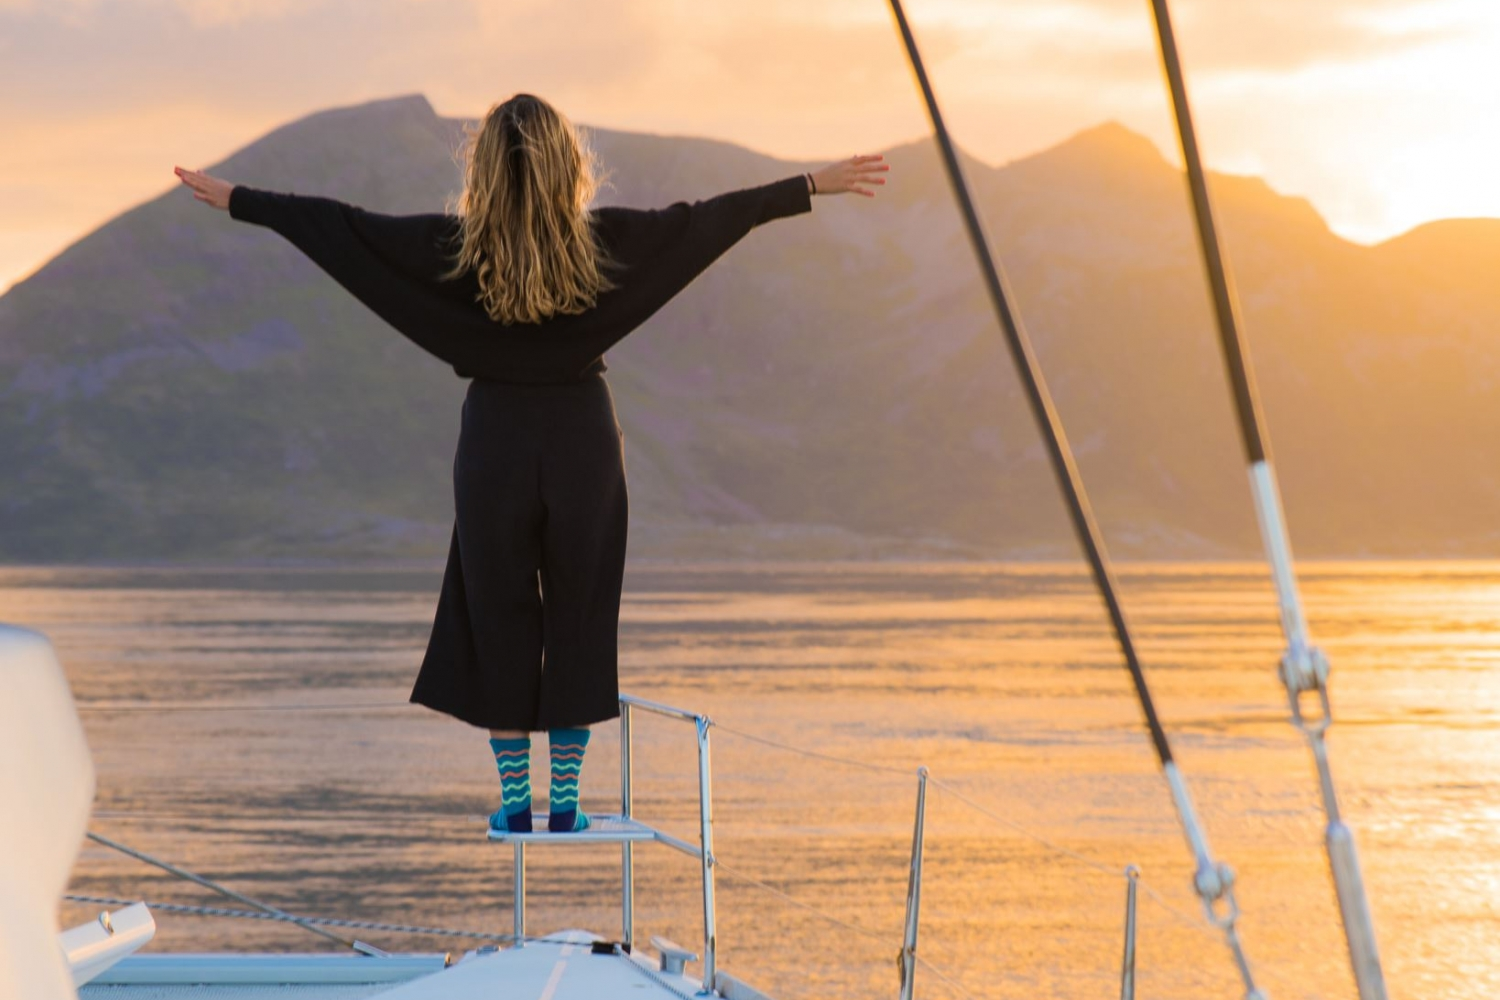 Lady in the front of the deck doing the Leonardo DiCaprio pose from Titanic with mountains and midnight sun in the background